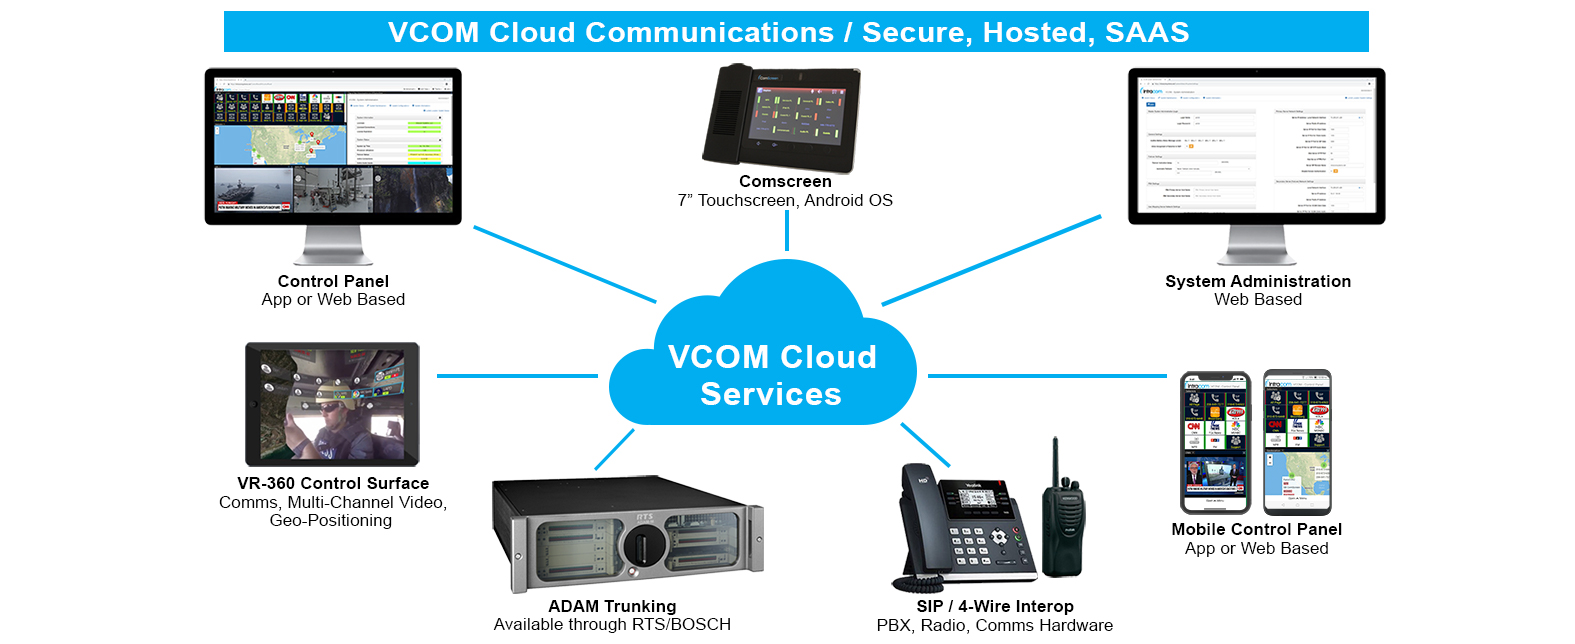 VCOM Cloud Services platform overview comscreen, sip phone, radio, smartphone